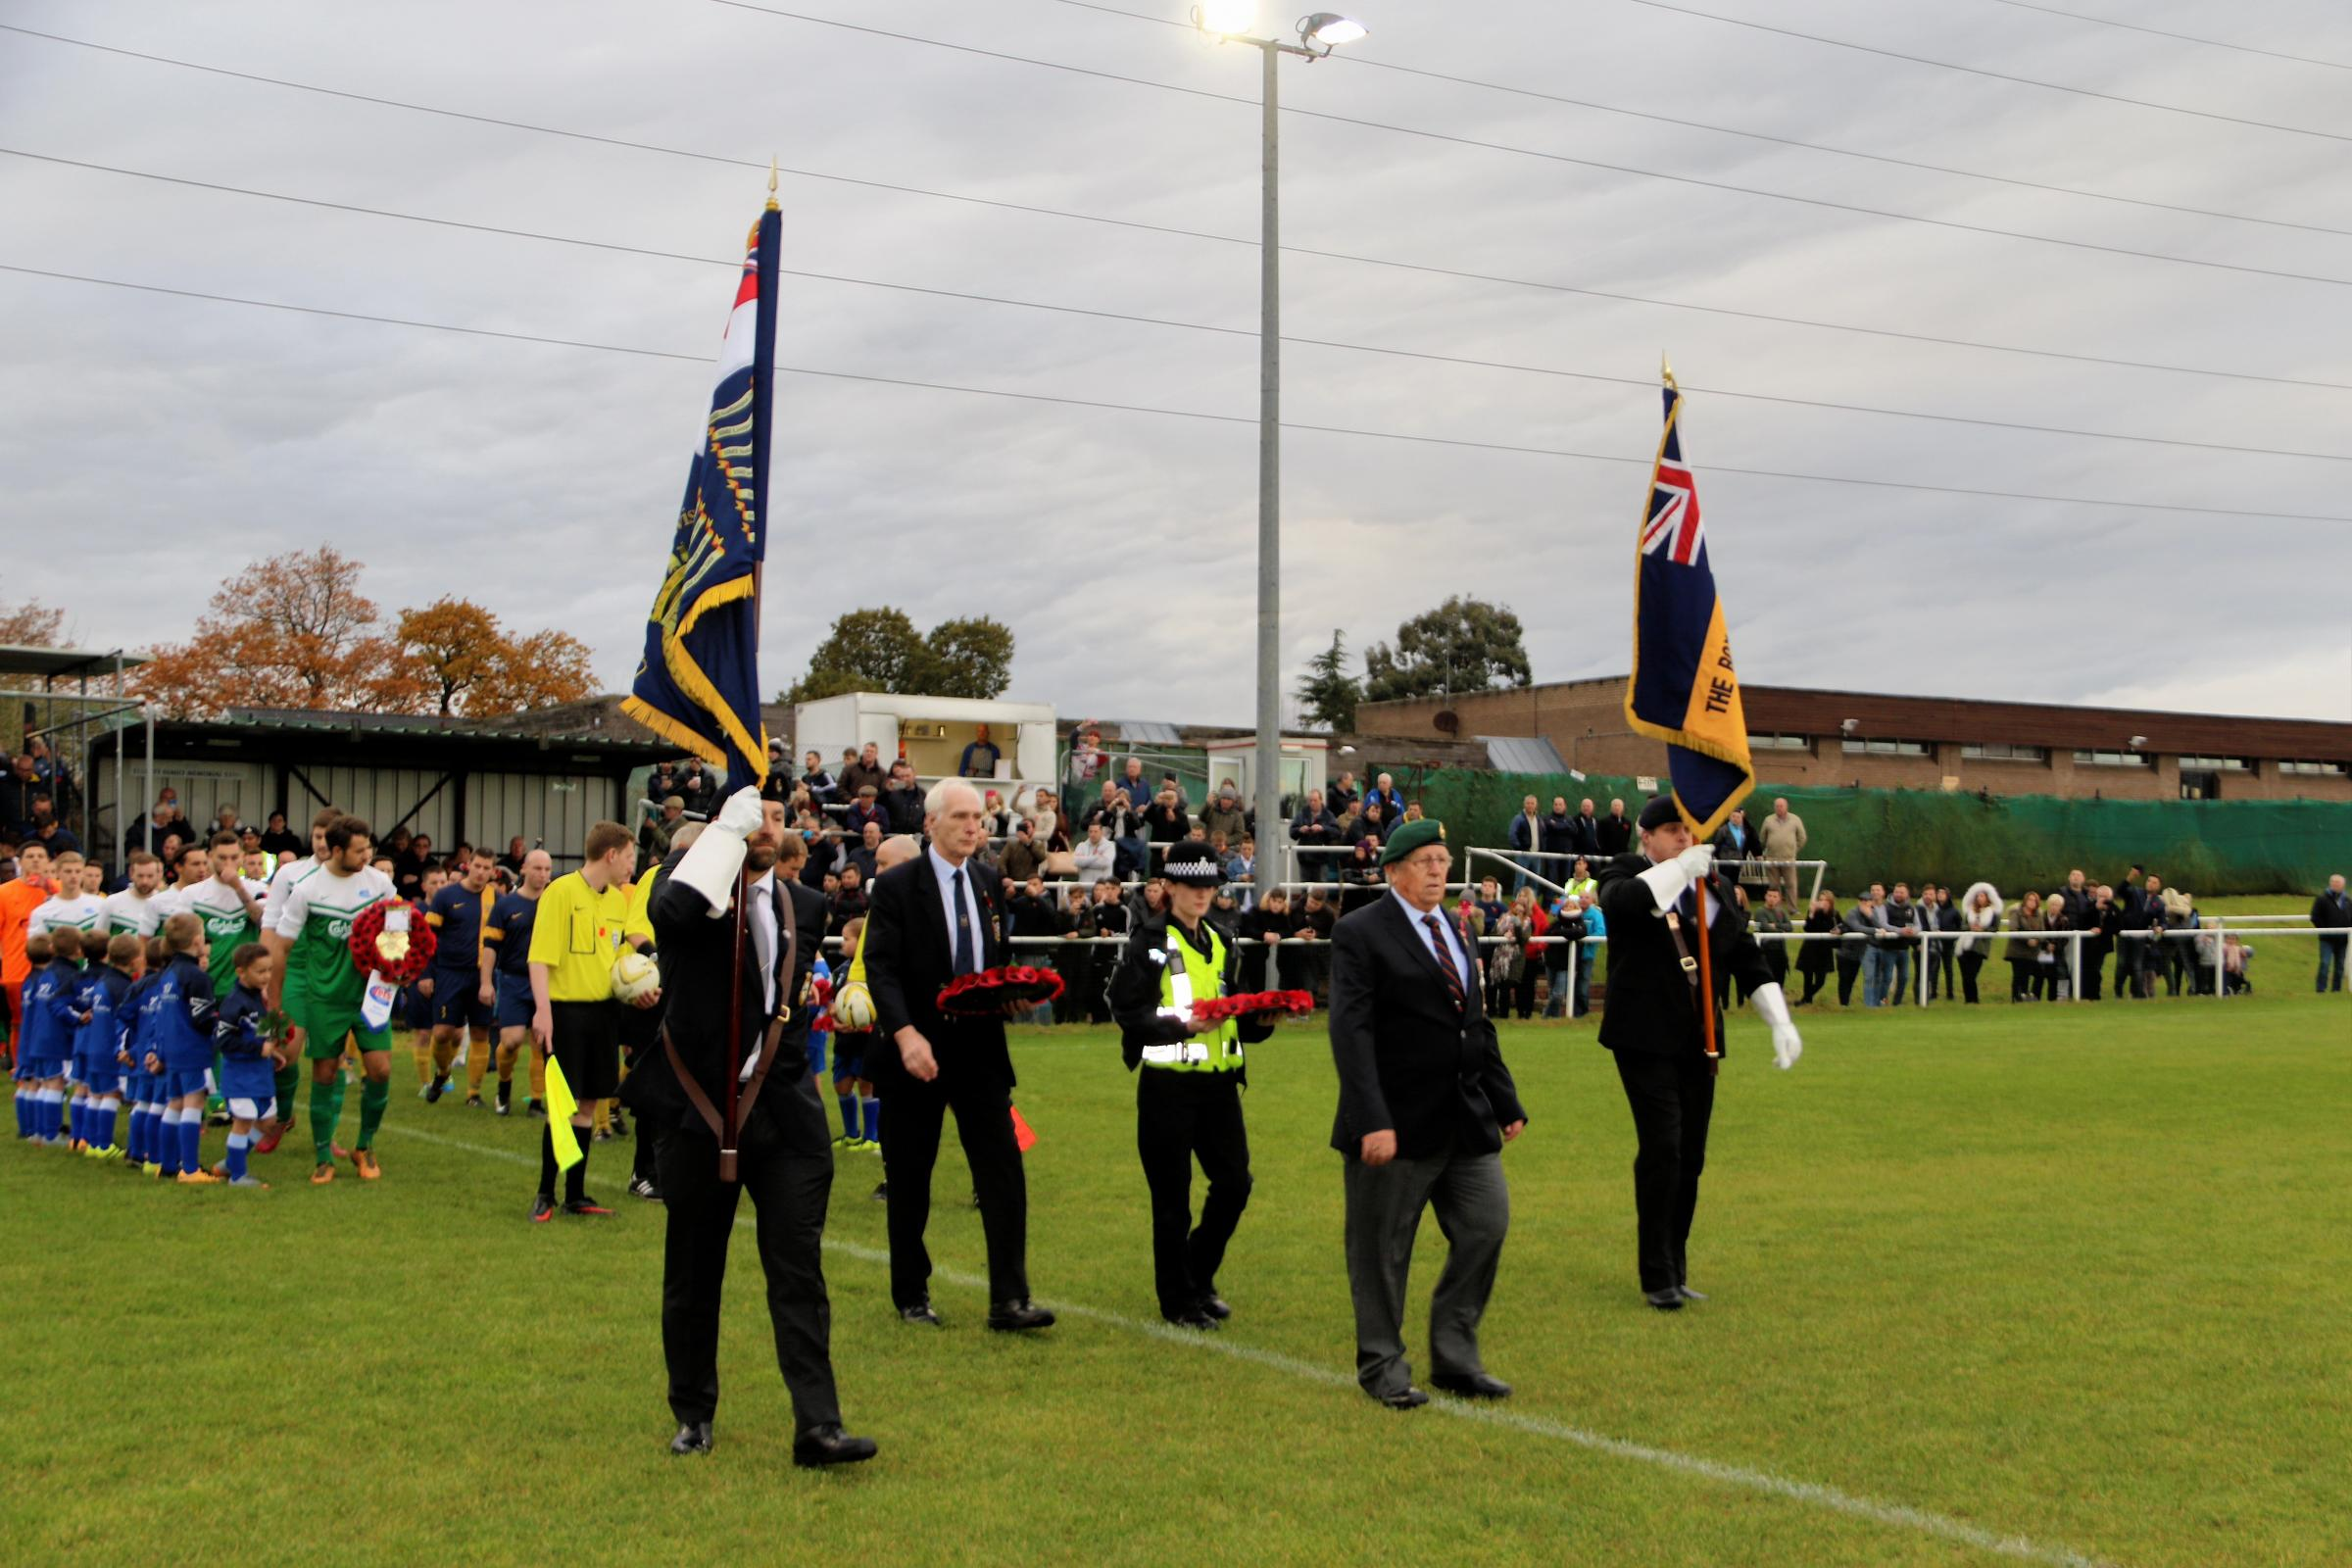 Former Royal Marine Commando and long-time friend of Oxhey Jets Fred Weaving leads the dignataries and teams out for last year's game against 'the Tigers'. He will again be taking the salute for the fallen at tomorrow's match. Picture: Len Kerswill